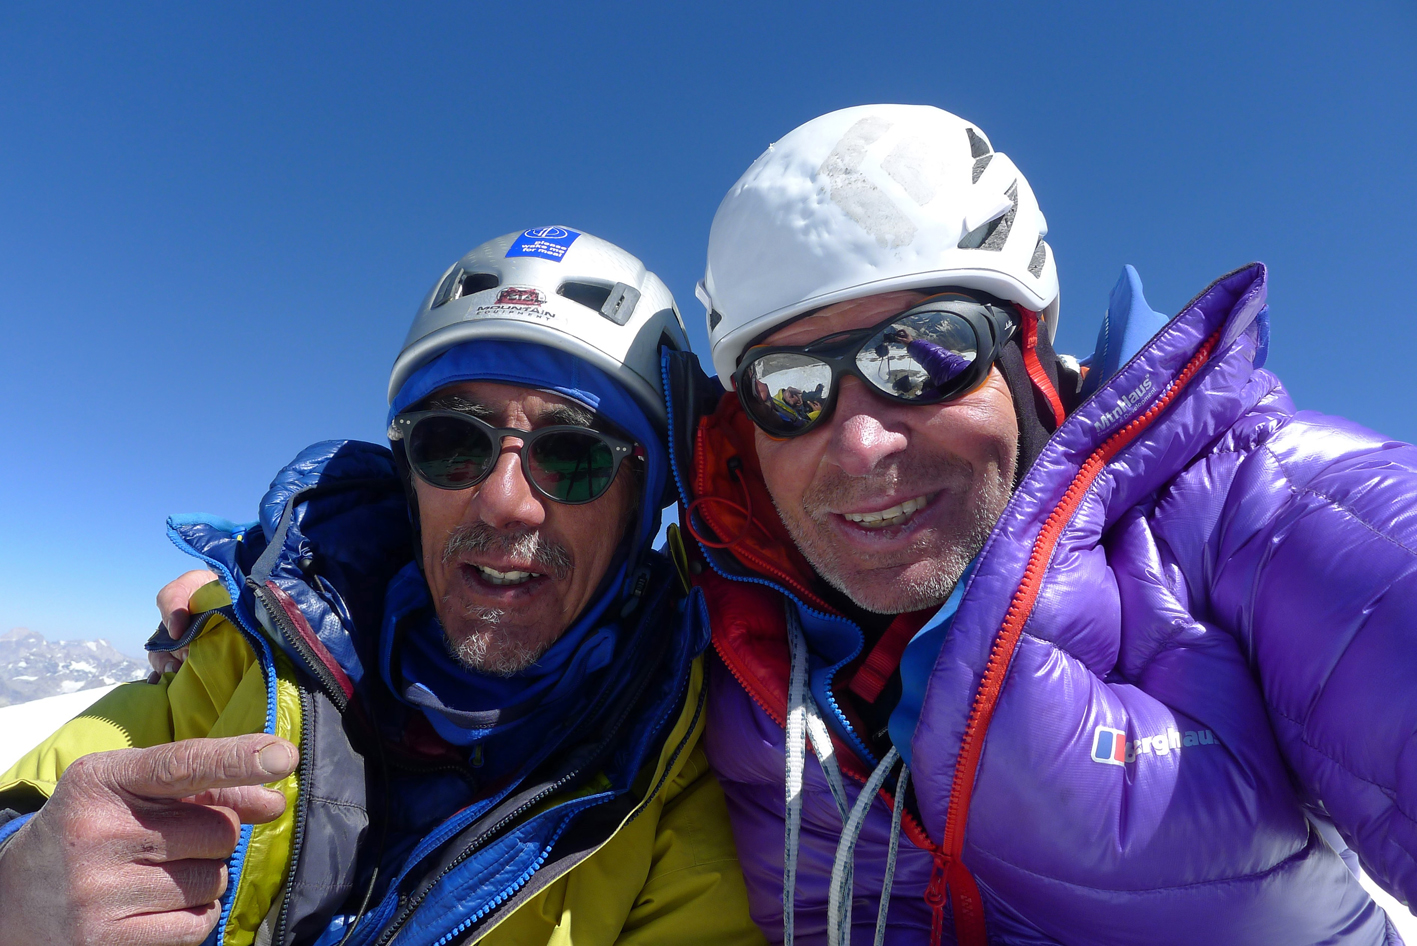 Sersank summit selfie in 2016 by Vic Saunders (left) and Mick Fowler.